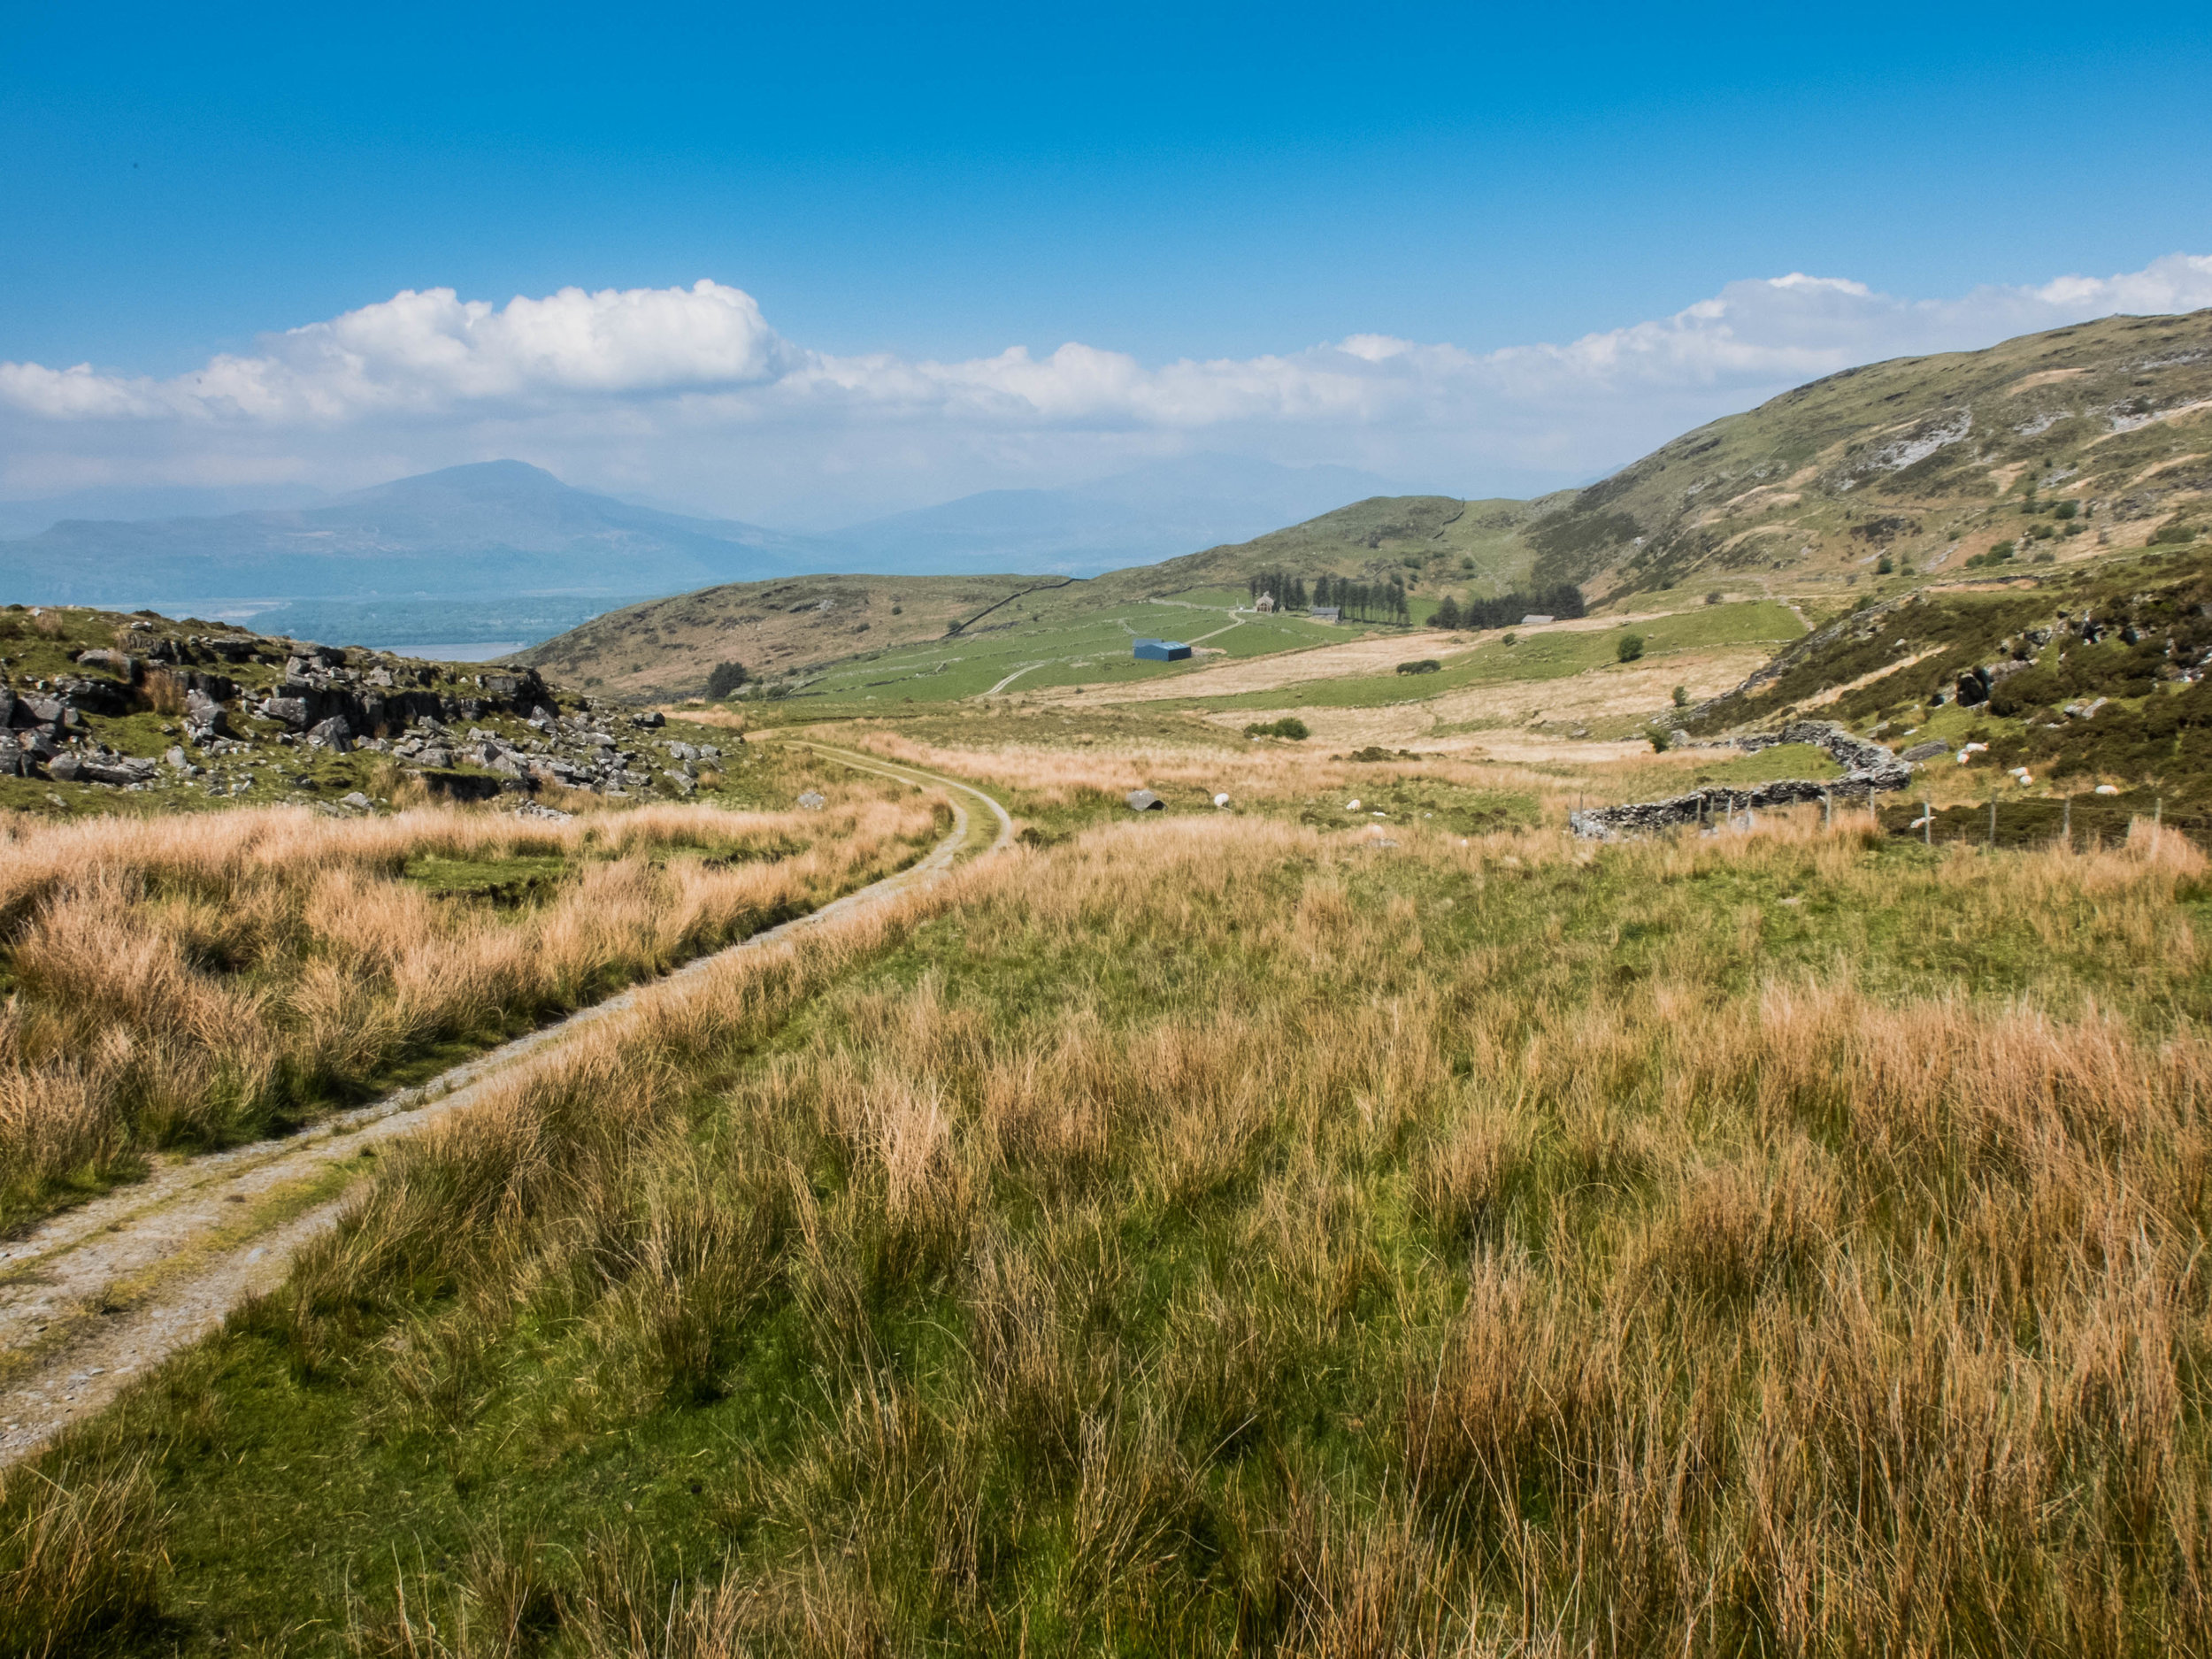 Views from the path towards Bryn Cadern Faner